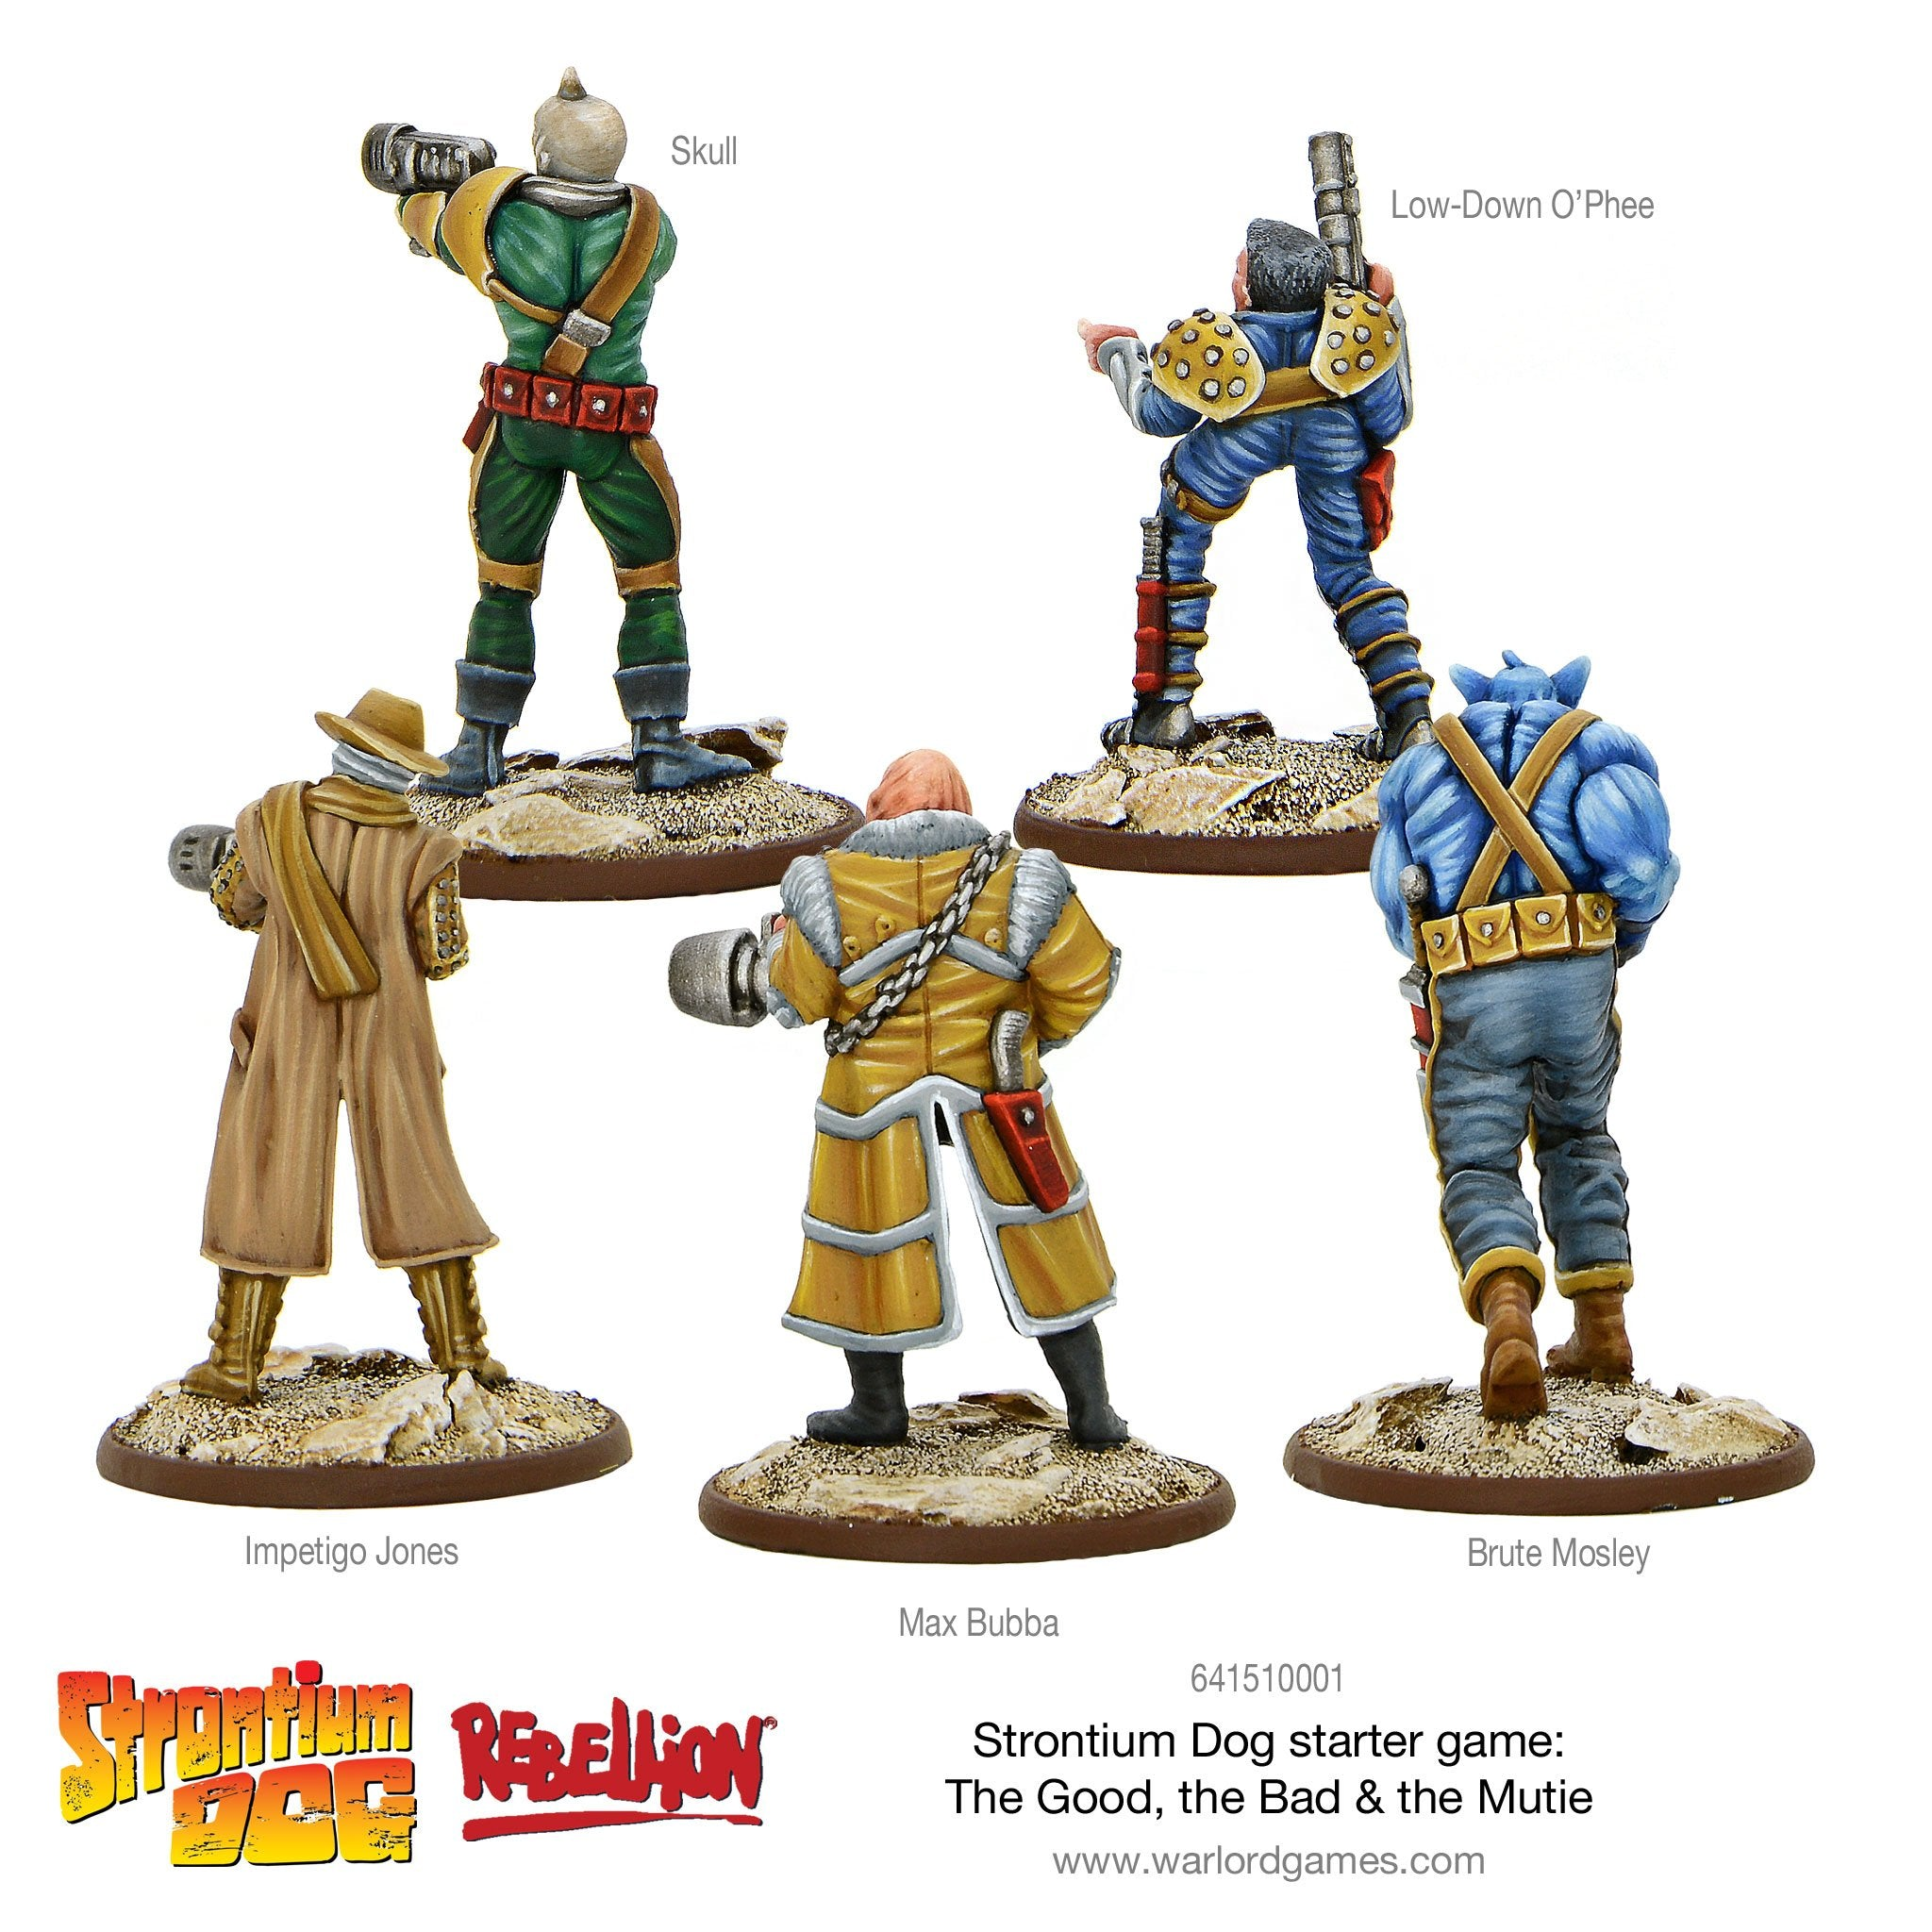 Strontium Dog: The Good the Bad and the Mutie starter game